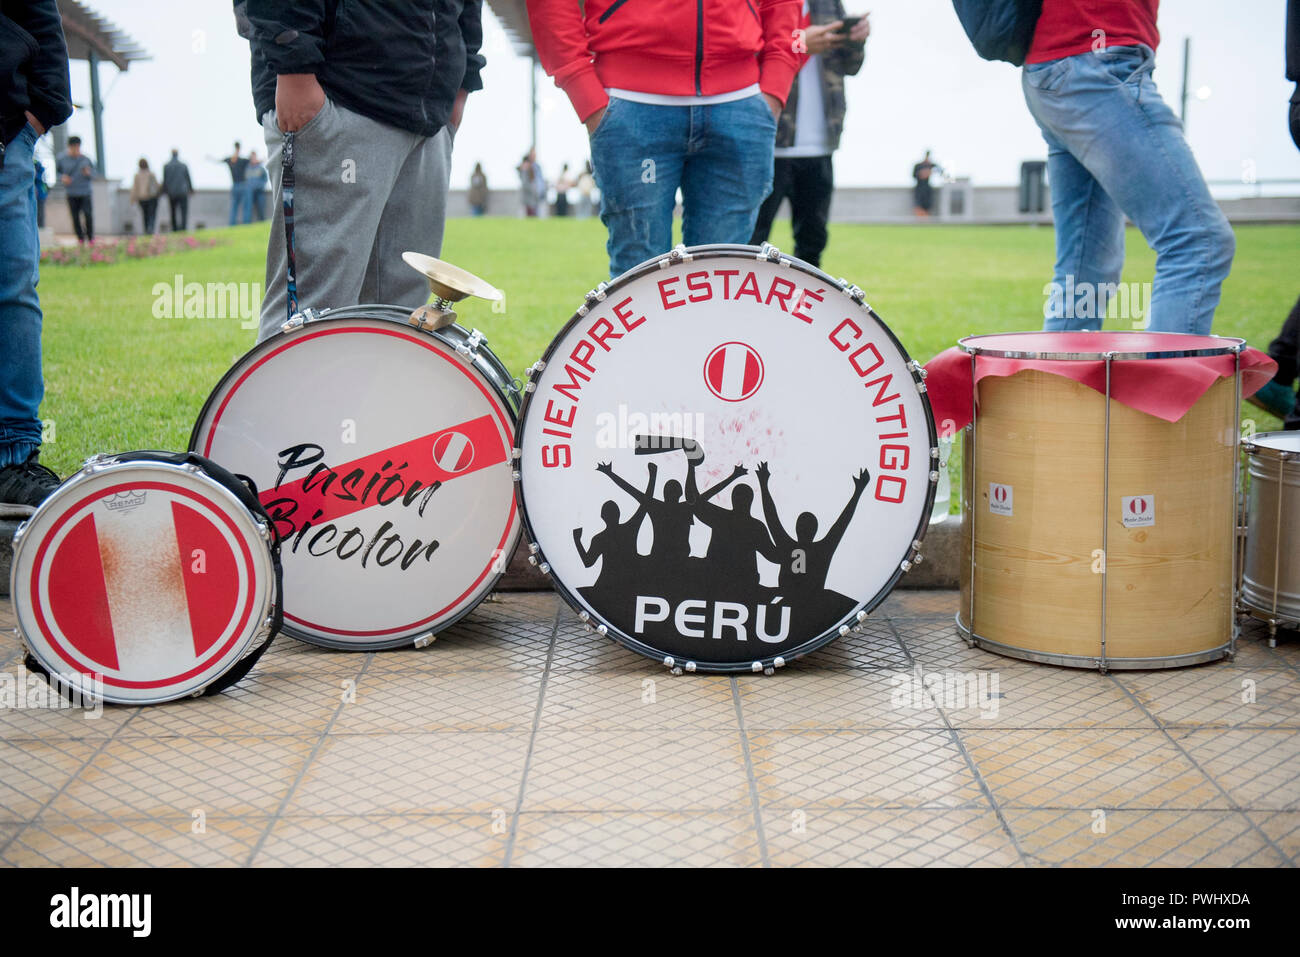 Fanaticism in Peru Peru vs. Chile Soccer. - Stock Image